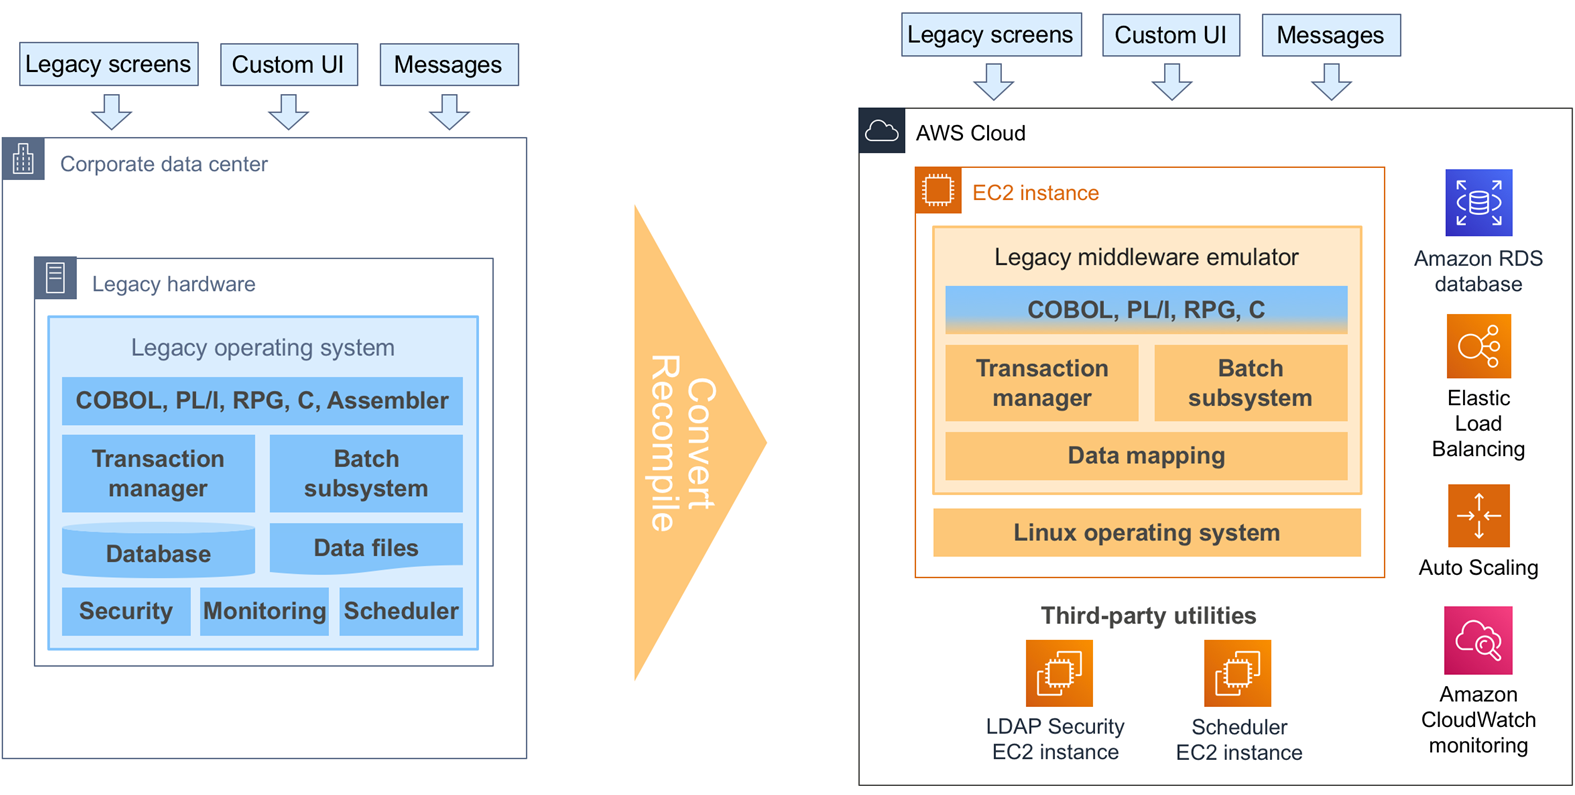 Demystifying Legacy Migration Options to the AWS Cloud | AWS